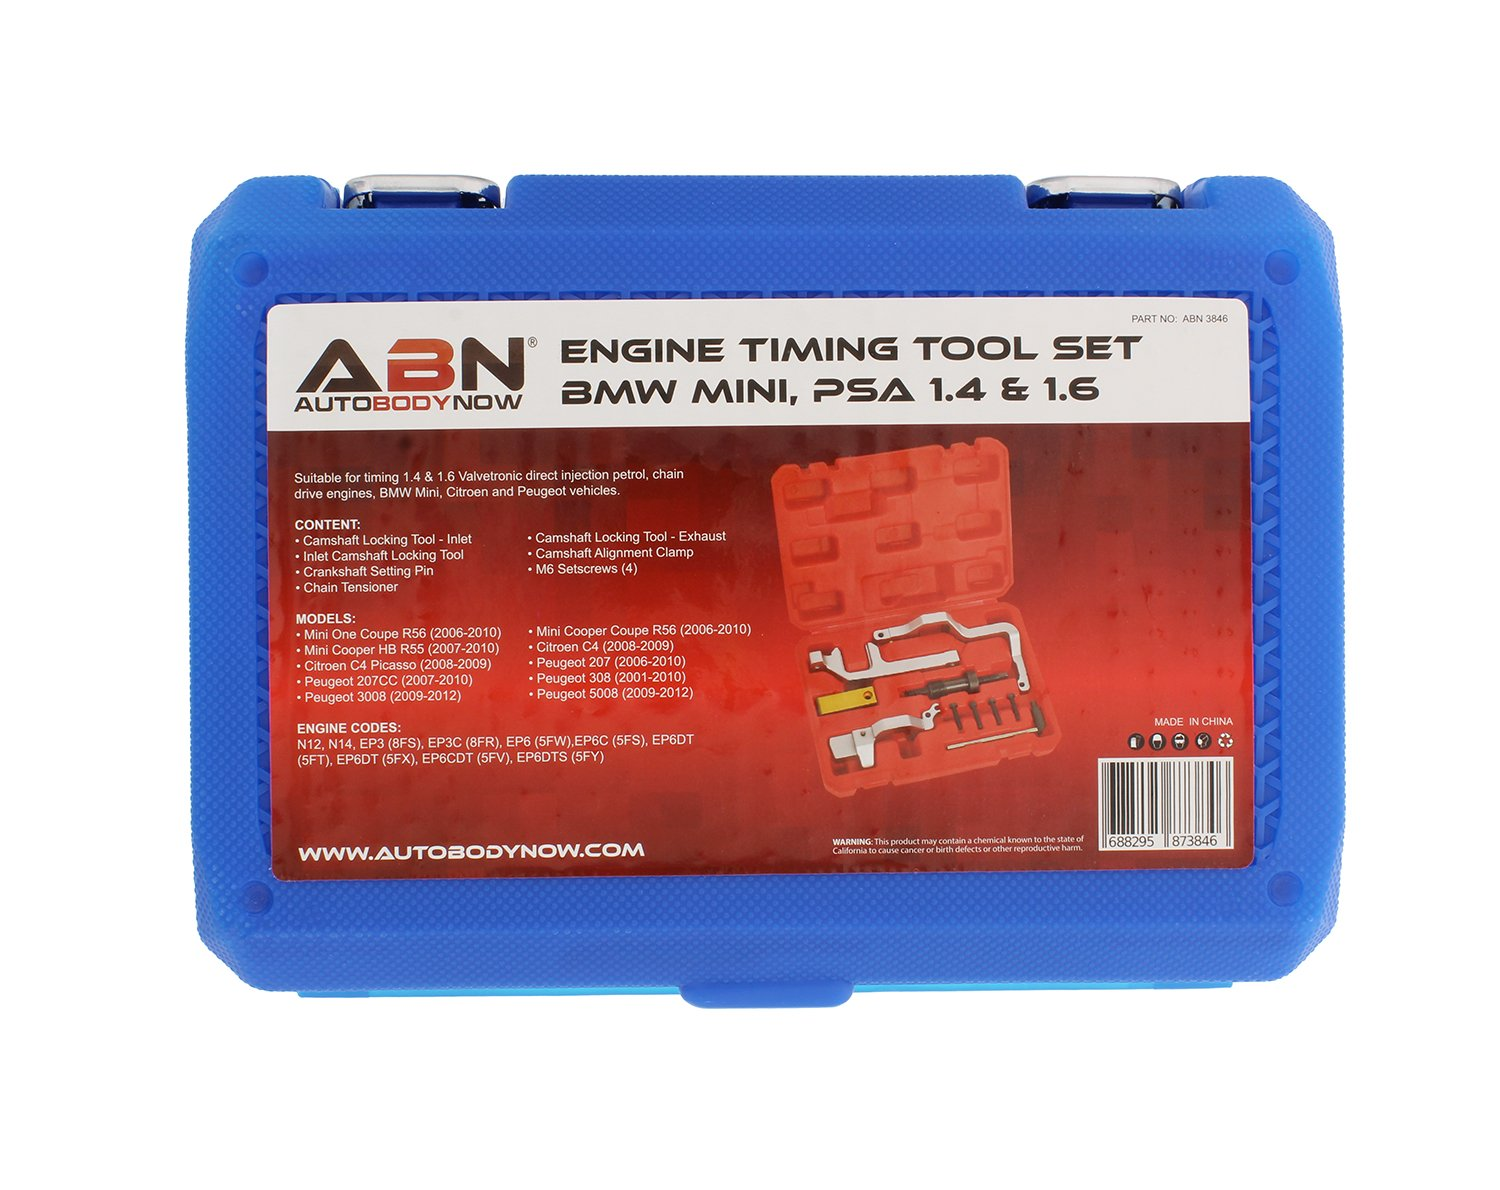 ABN Engine Timing Tool Set for Mini Cooper N12, N14 - BMW, Citroen, Peugeot by ABN (Image #6)